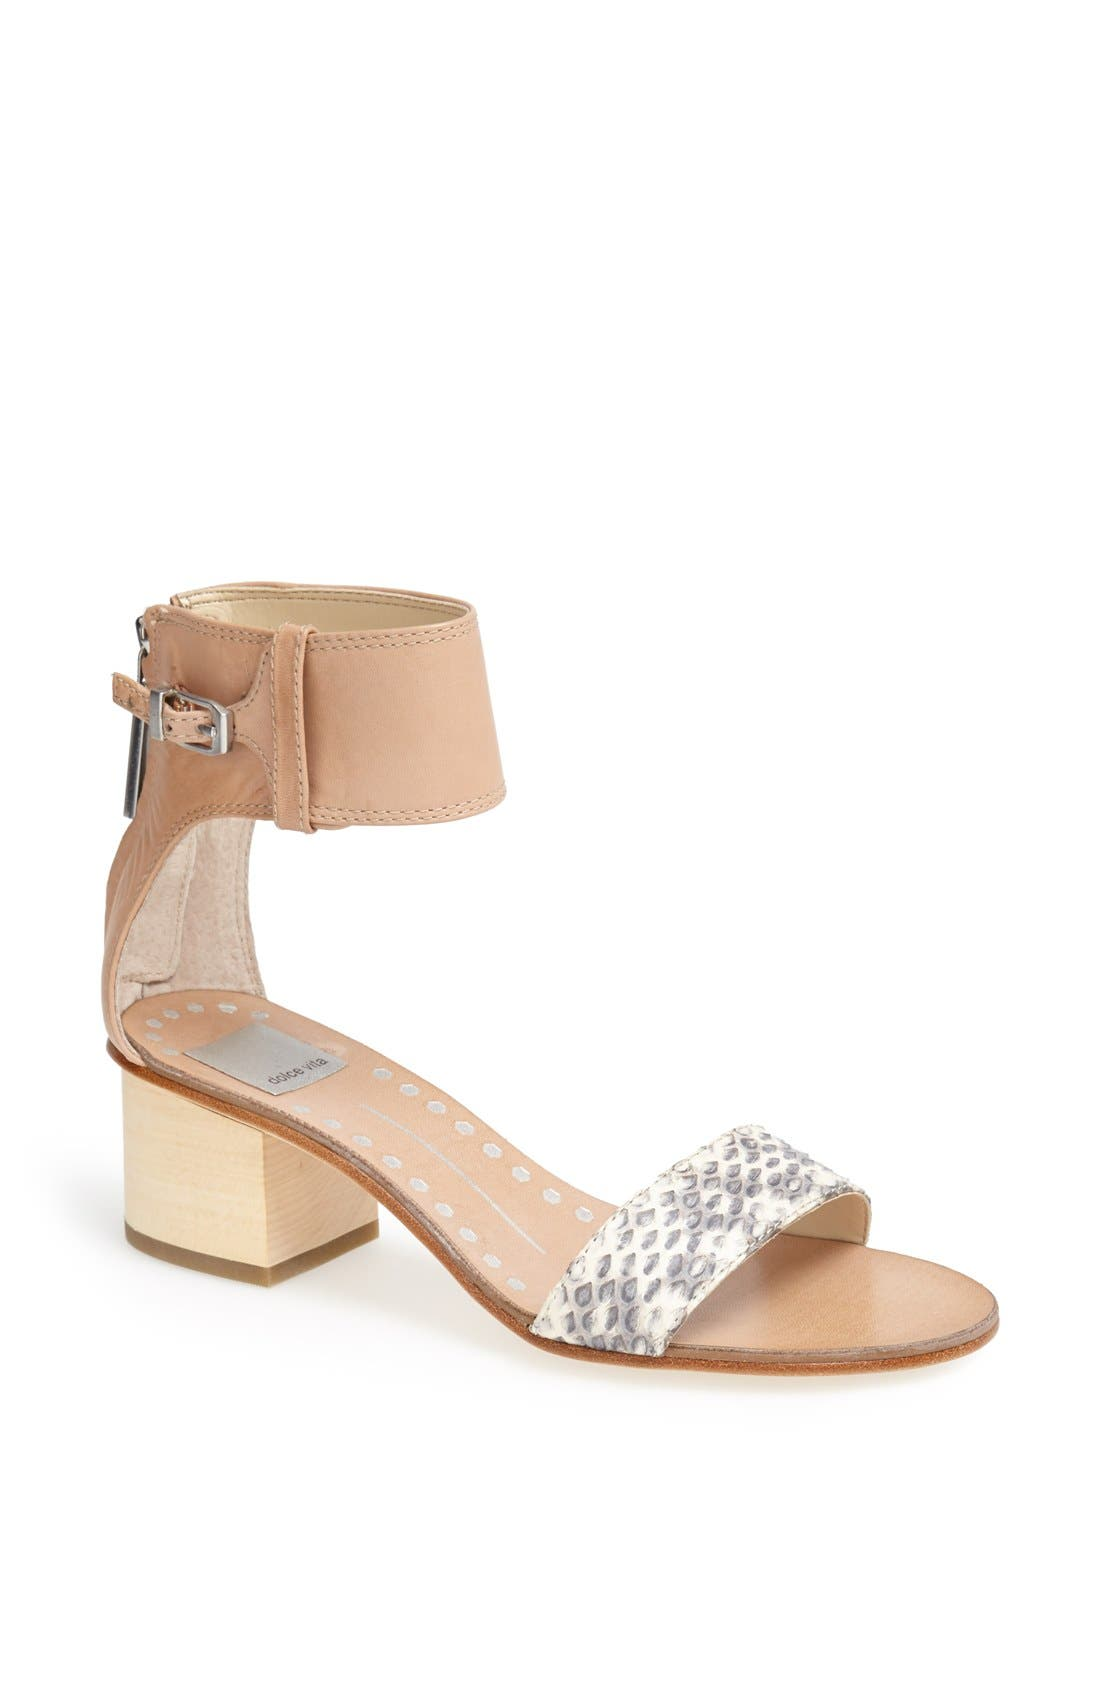 Alternate Image 1 Selected - Dolce Vita 'Foxie' Sandal